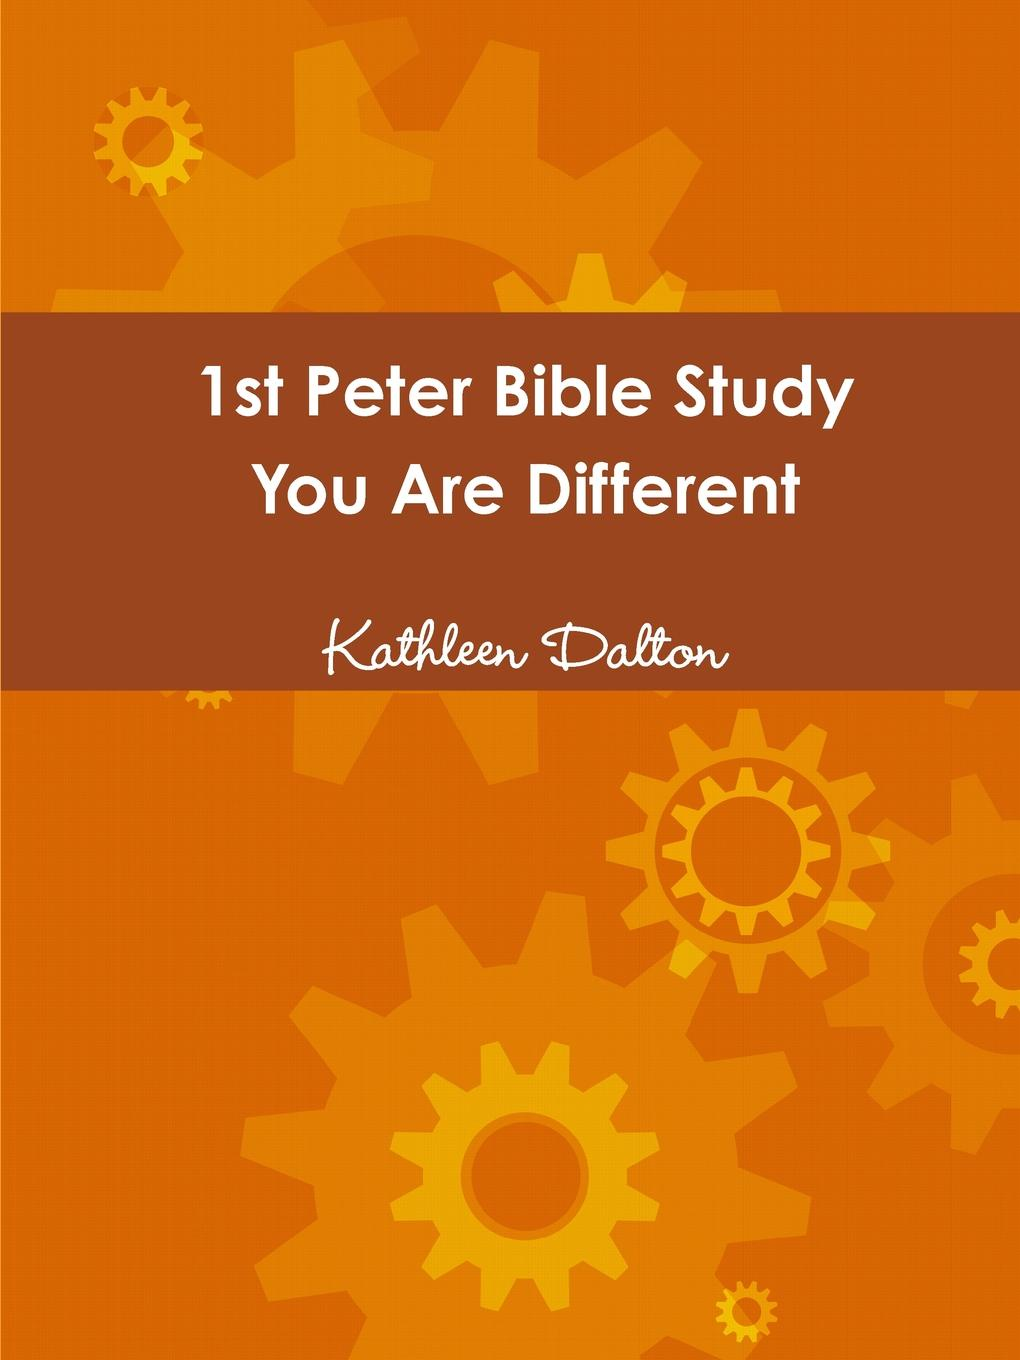 Kathleen Dalton 1st Peter Bible Study You Are Different same issue different presentations